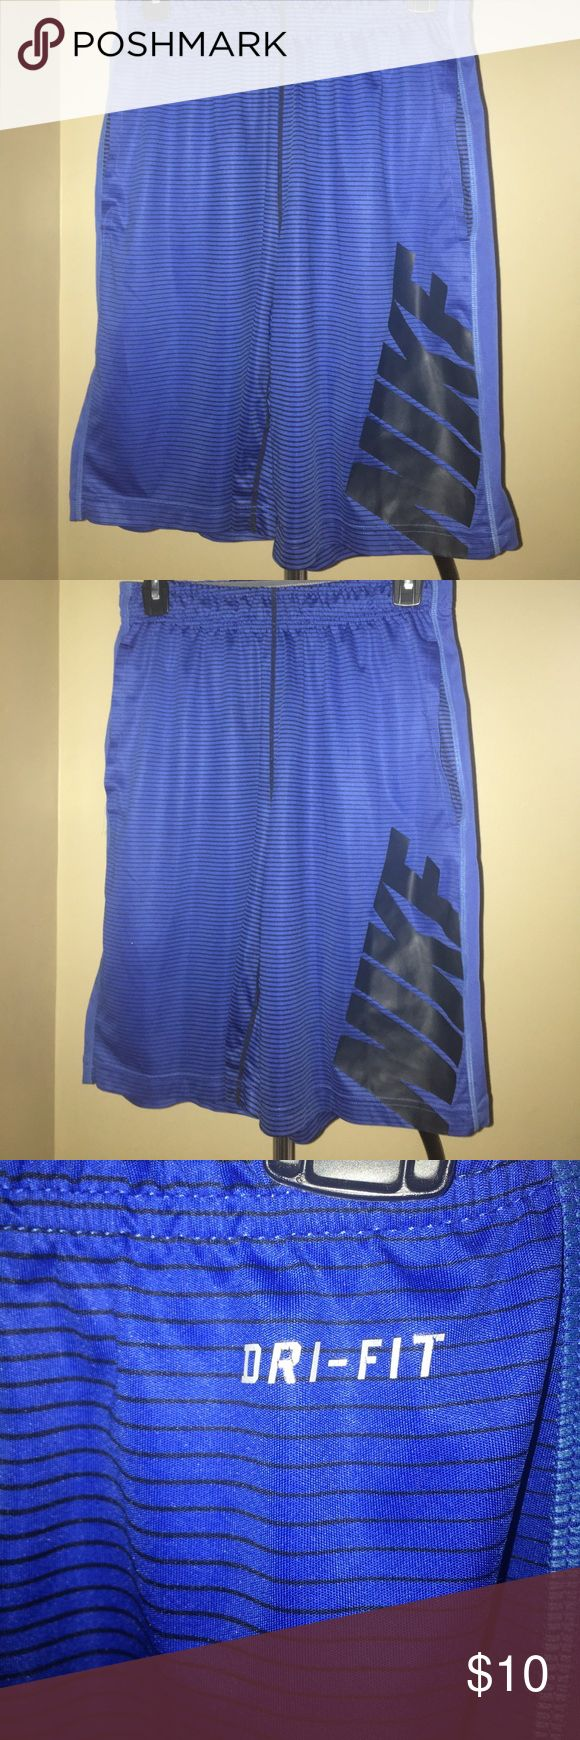 Nike dri Fit shorts size S Blue shoes with Black accents Nike Shorts Athletic